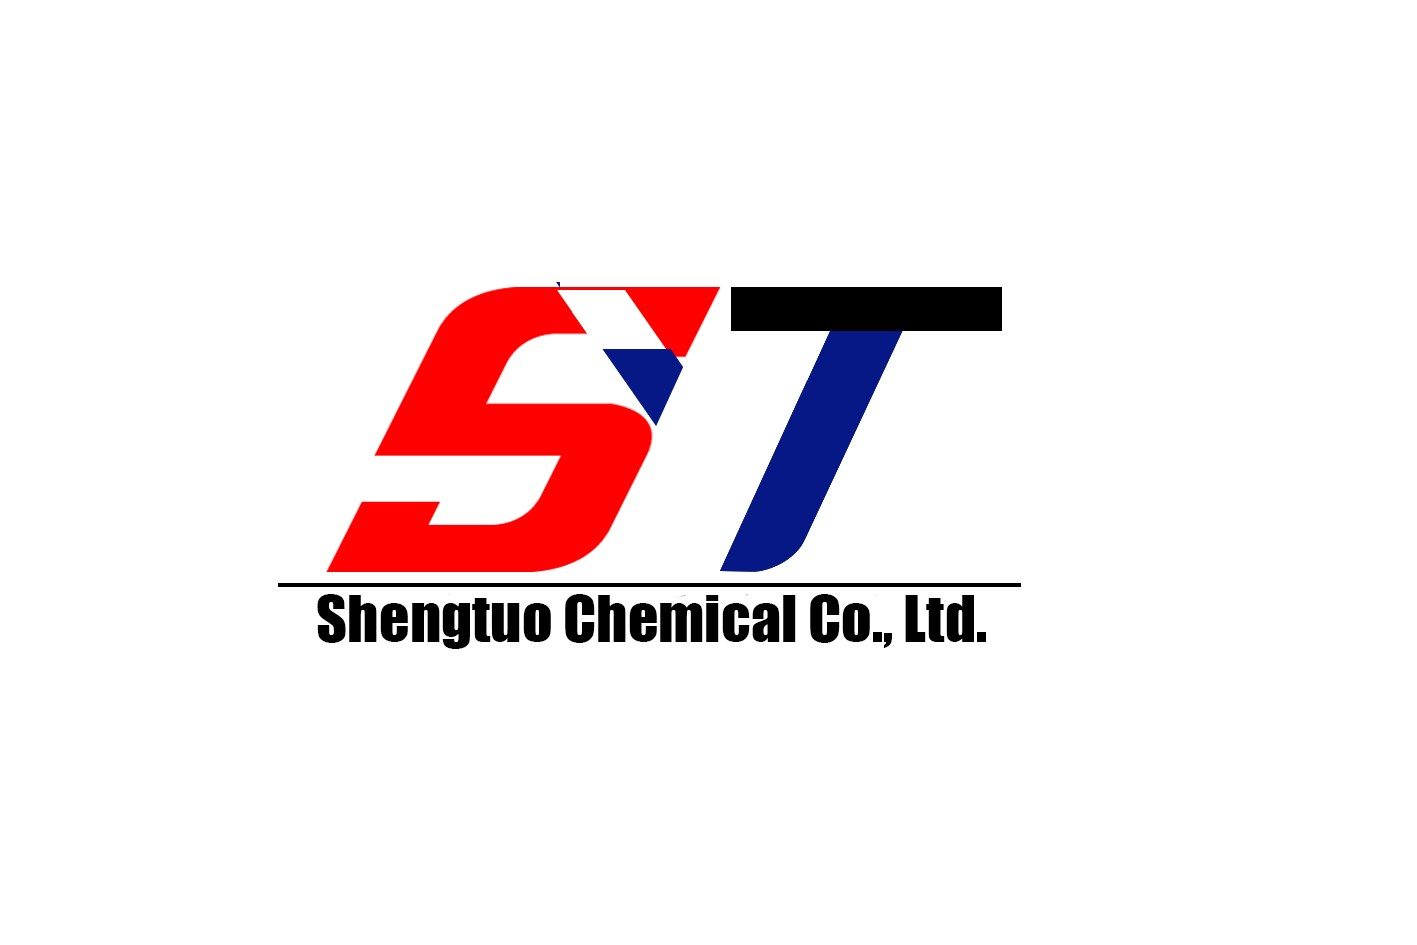 ShengTuo Chemical Co., Ltd